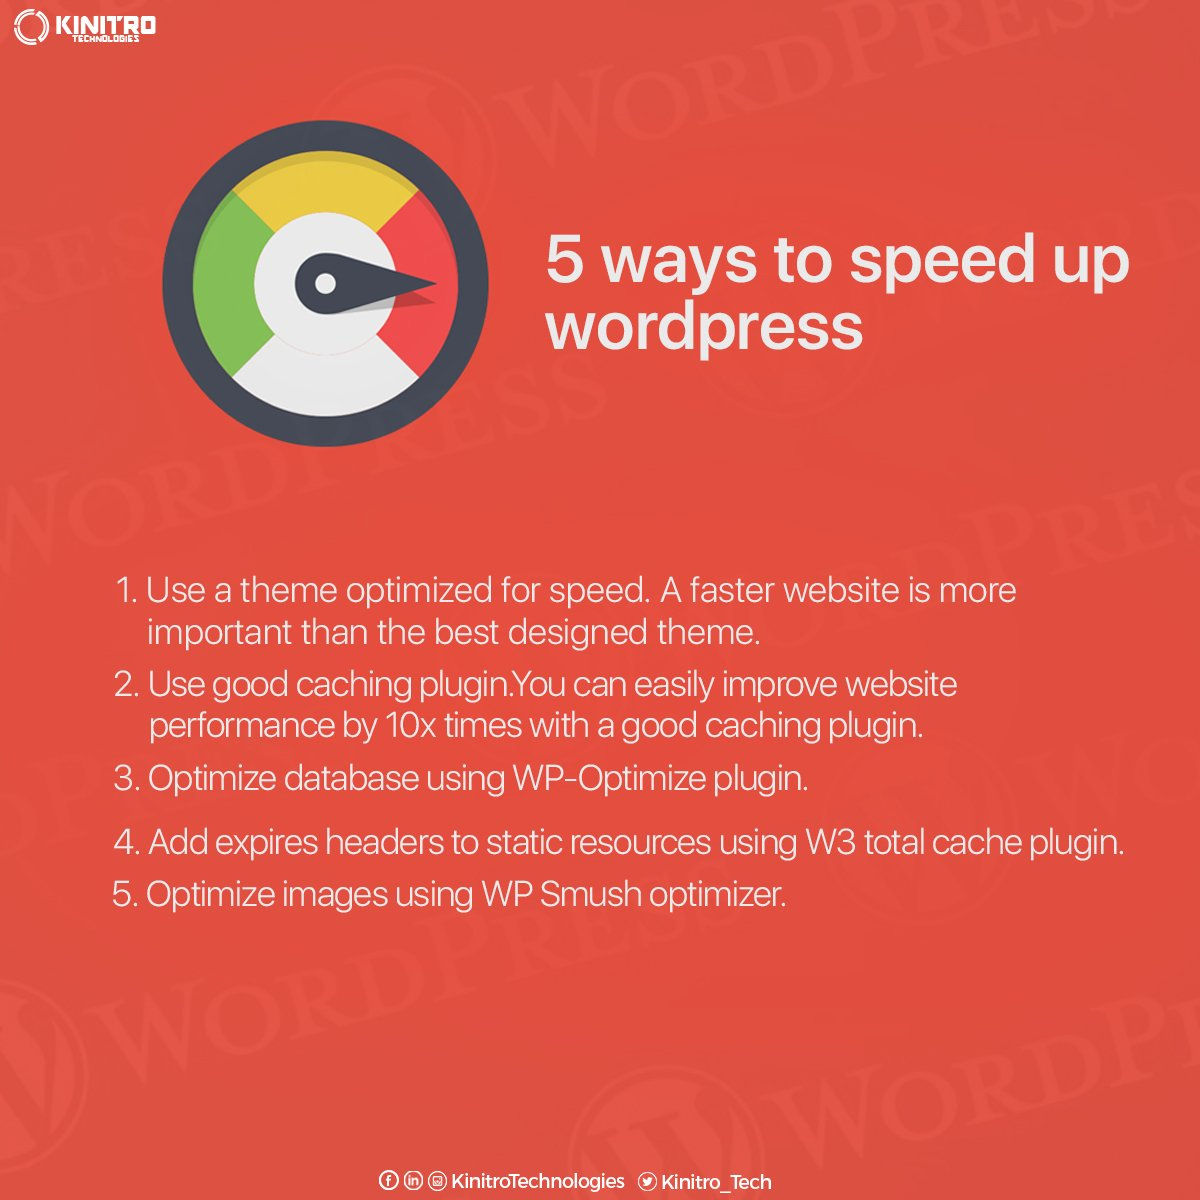 A Faster Website ✍️ is More Important than the Best Designed Theme. #Website #DigitalMarketing #WordPress https://t.co/NcpRE67RXO